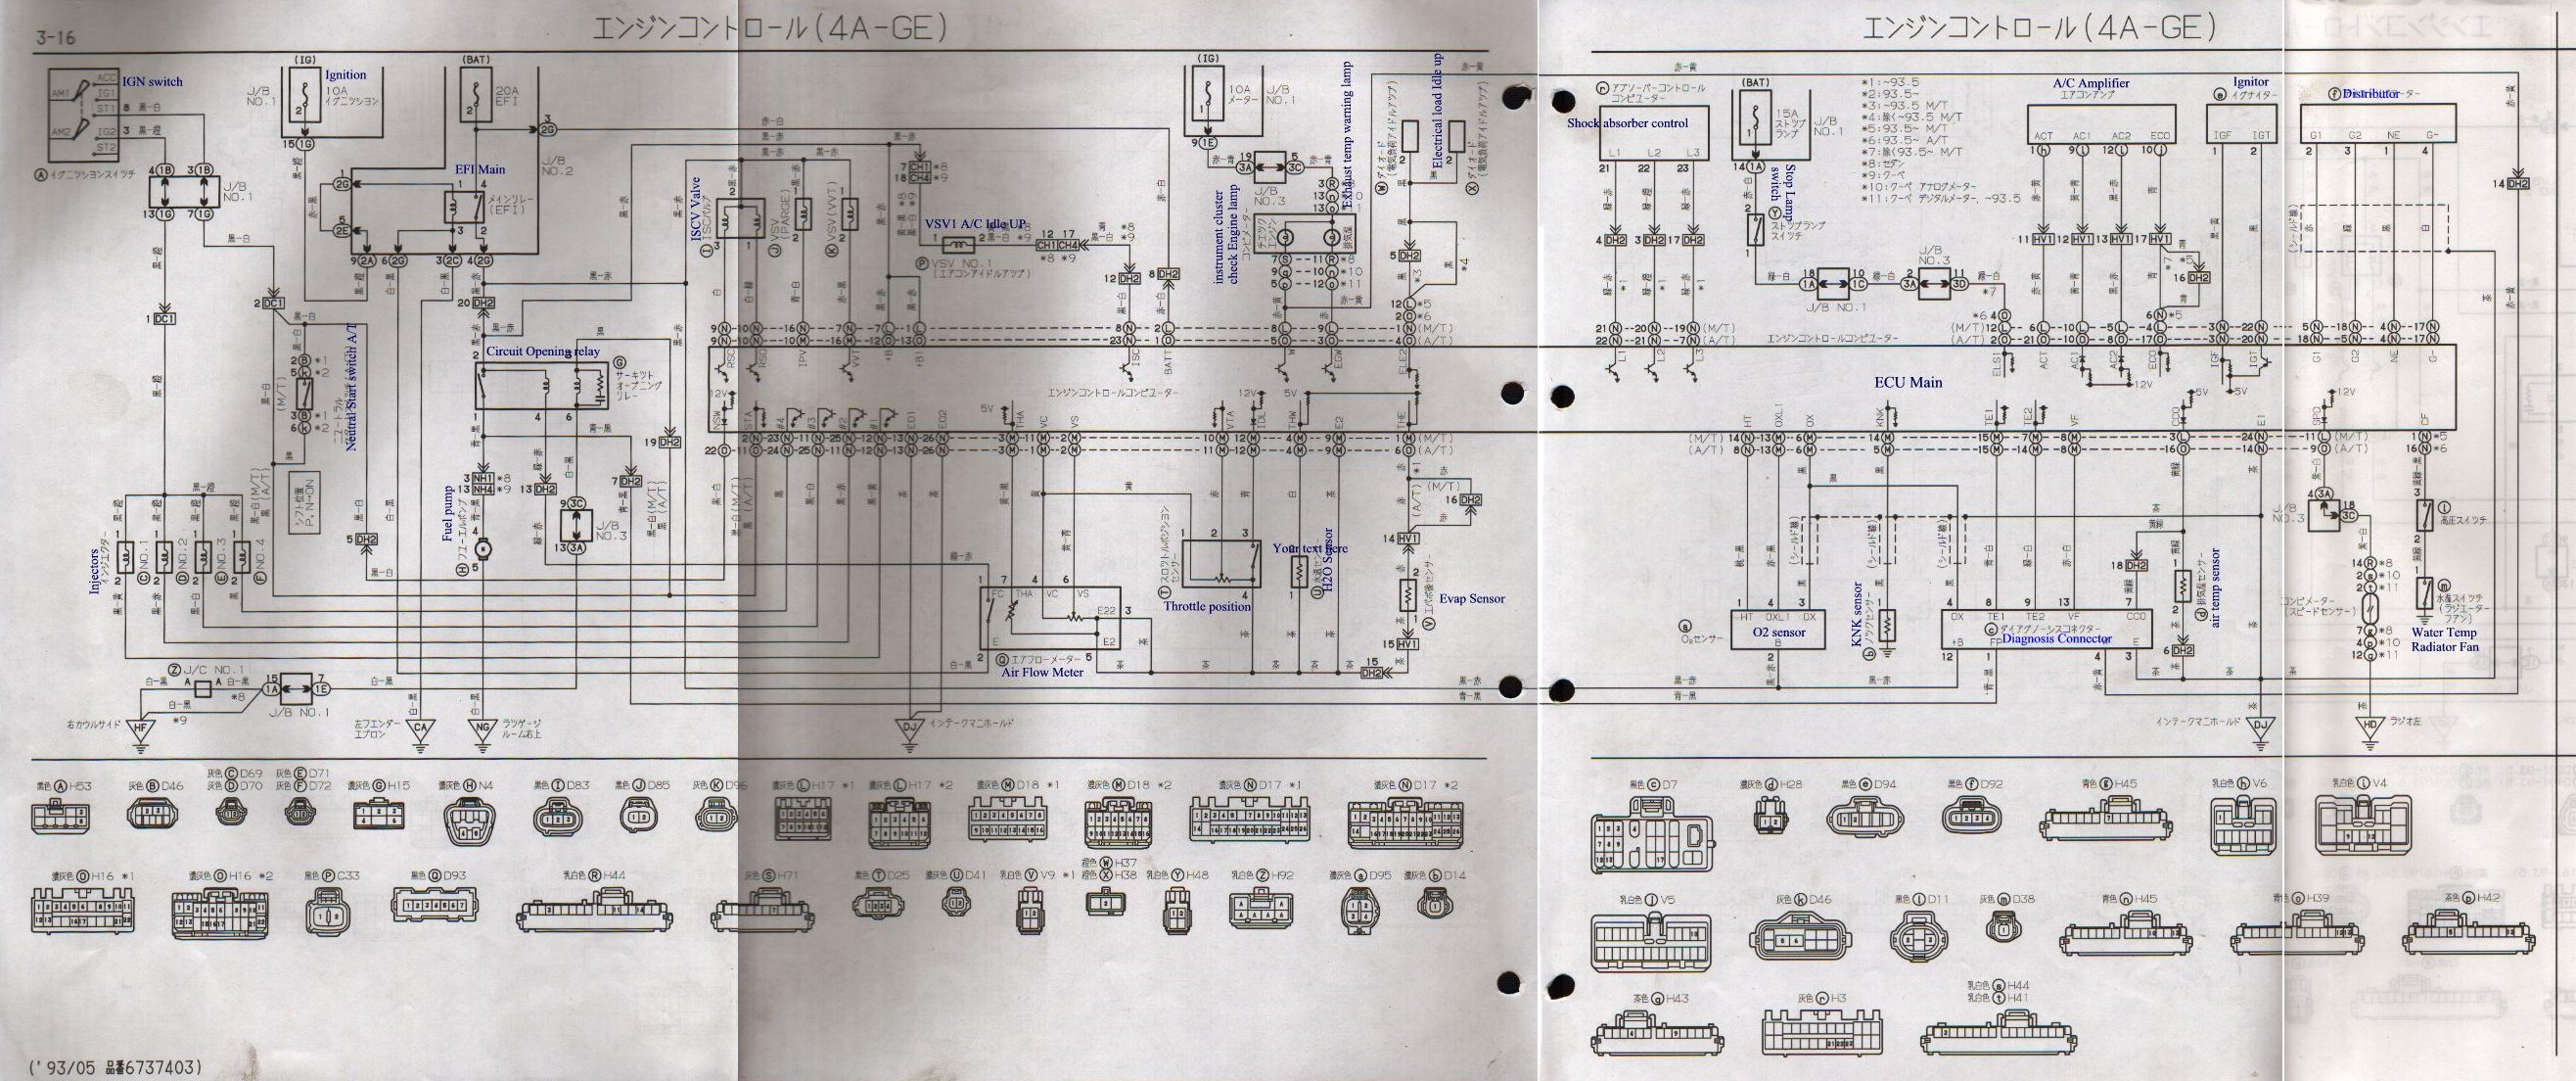 1990 Dodge B150 Wiring Diagram Toyota Celica Headlight 43 Silvertop 100 Echo 2004 Replace Alternator Belt 1994 Pickup